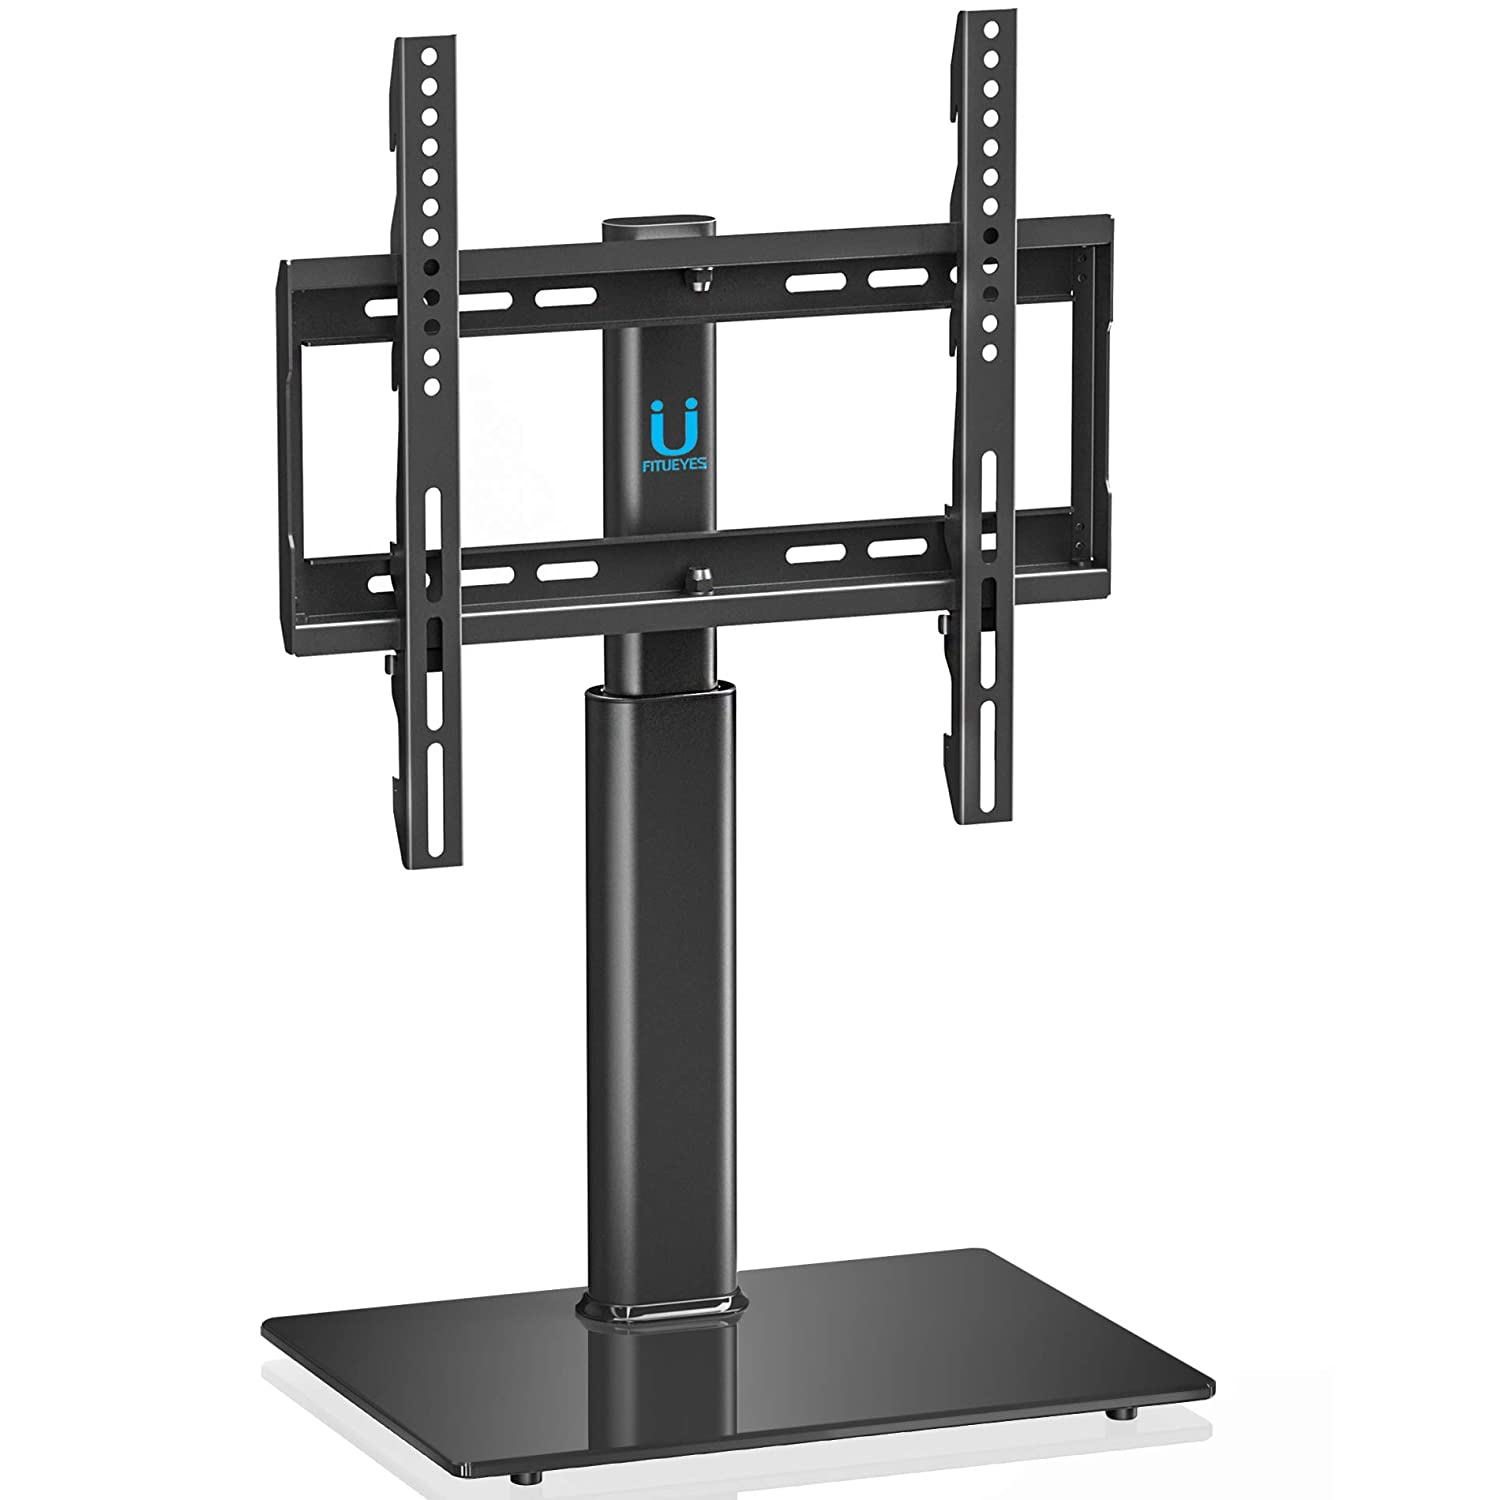 Fitueyes Universal TV Stand//Base with Swivel Mount for up to 32inch Flat Curved Screen TVS Height Adjustable